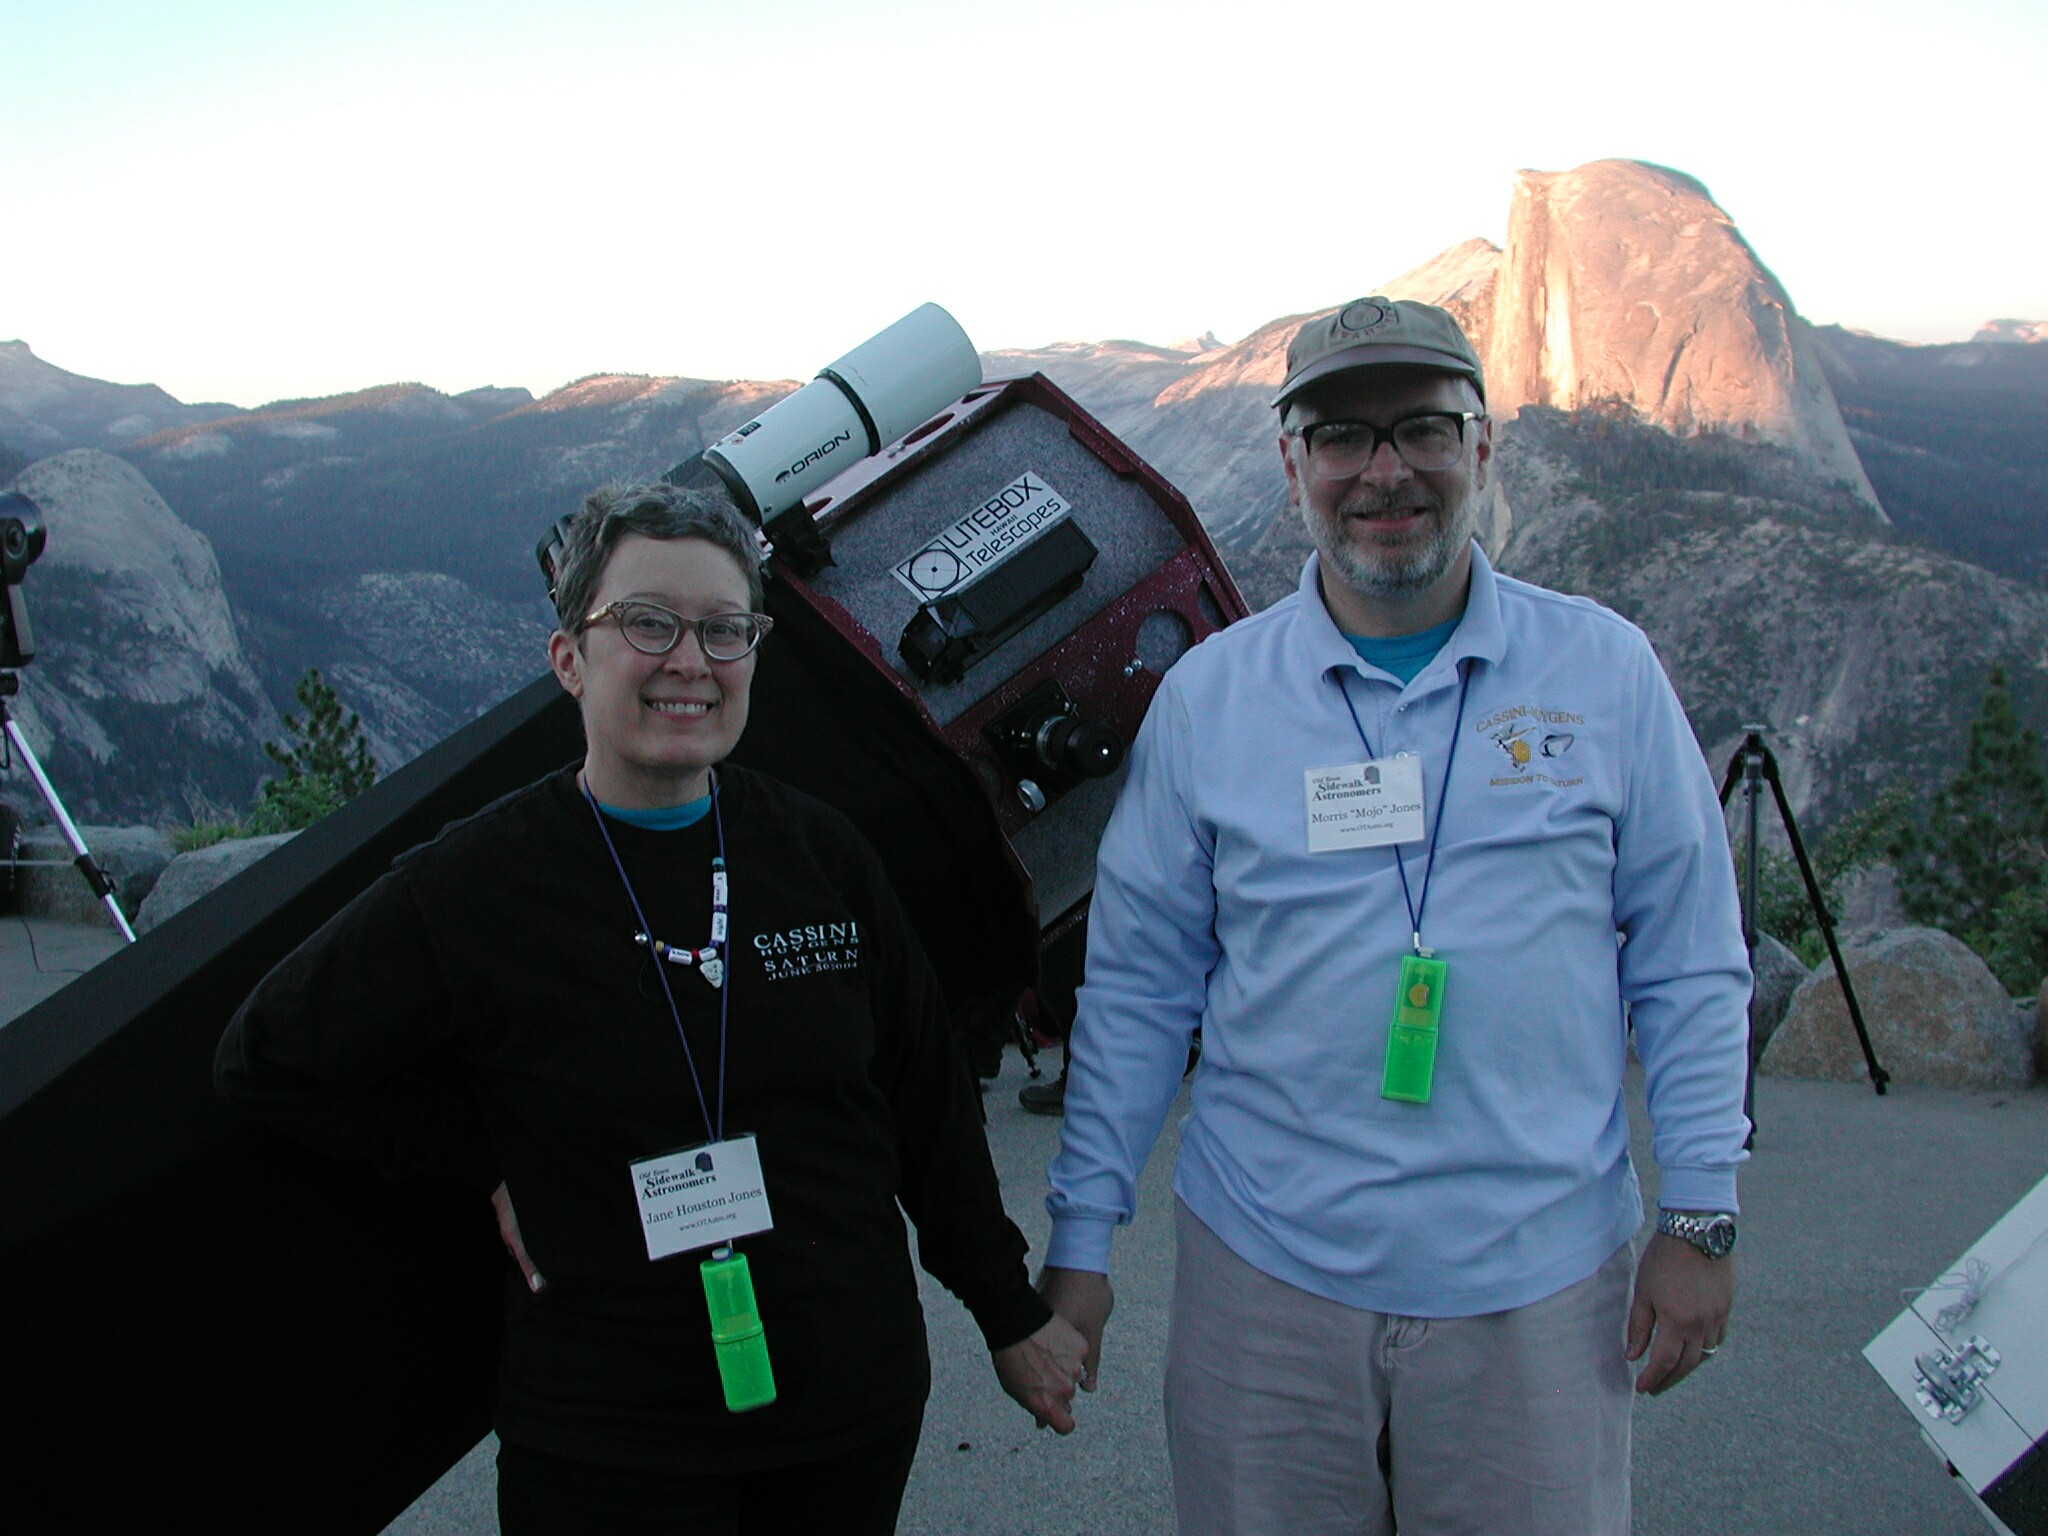 Public star party at Glacier Point, Yosemite National Park